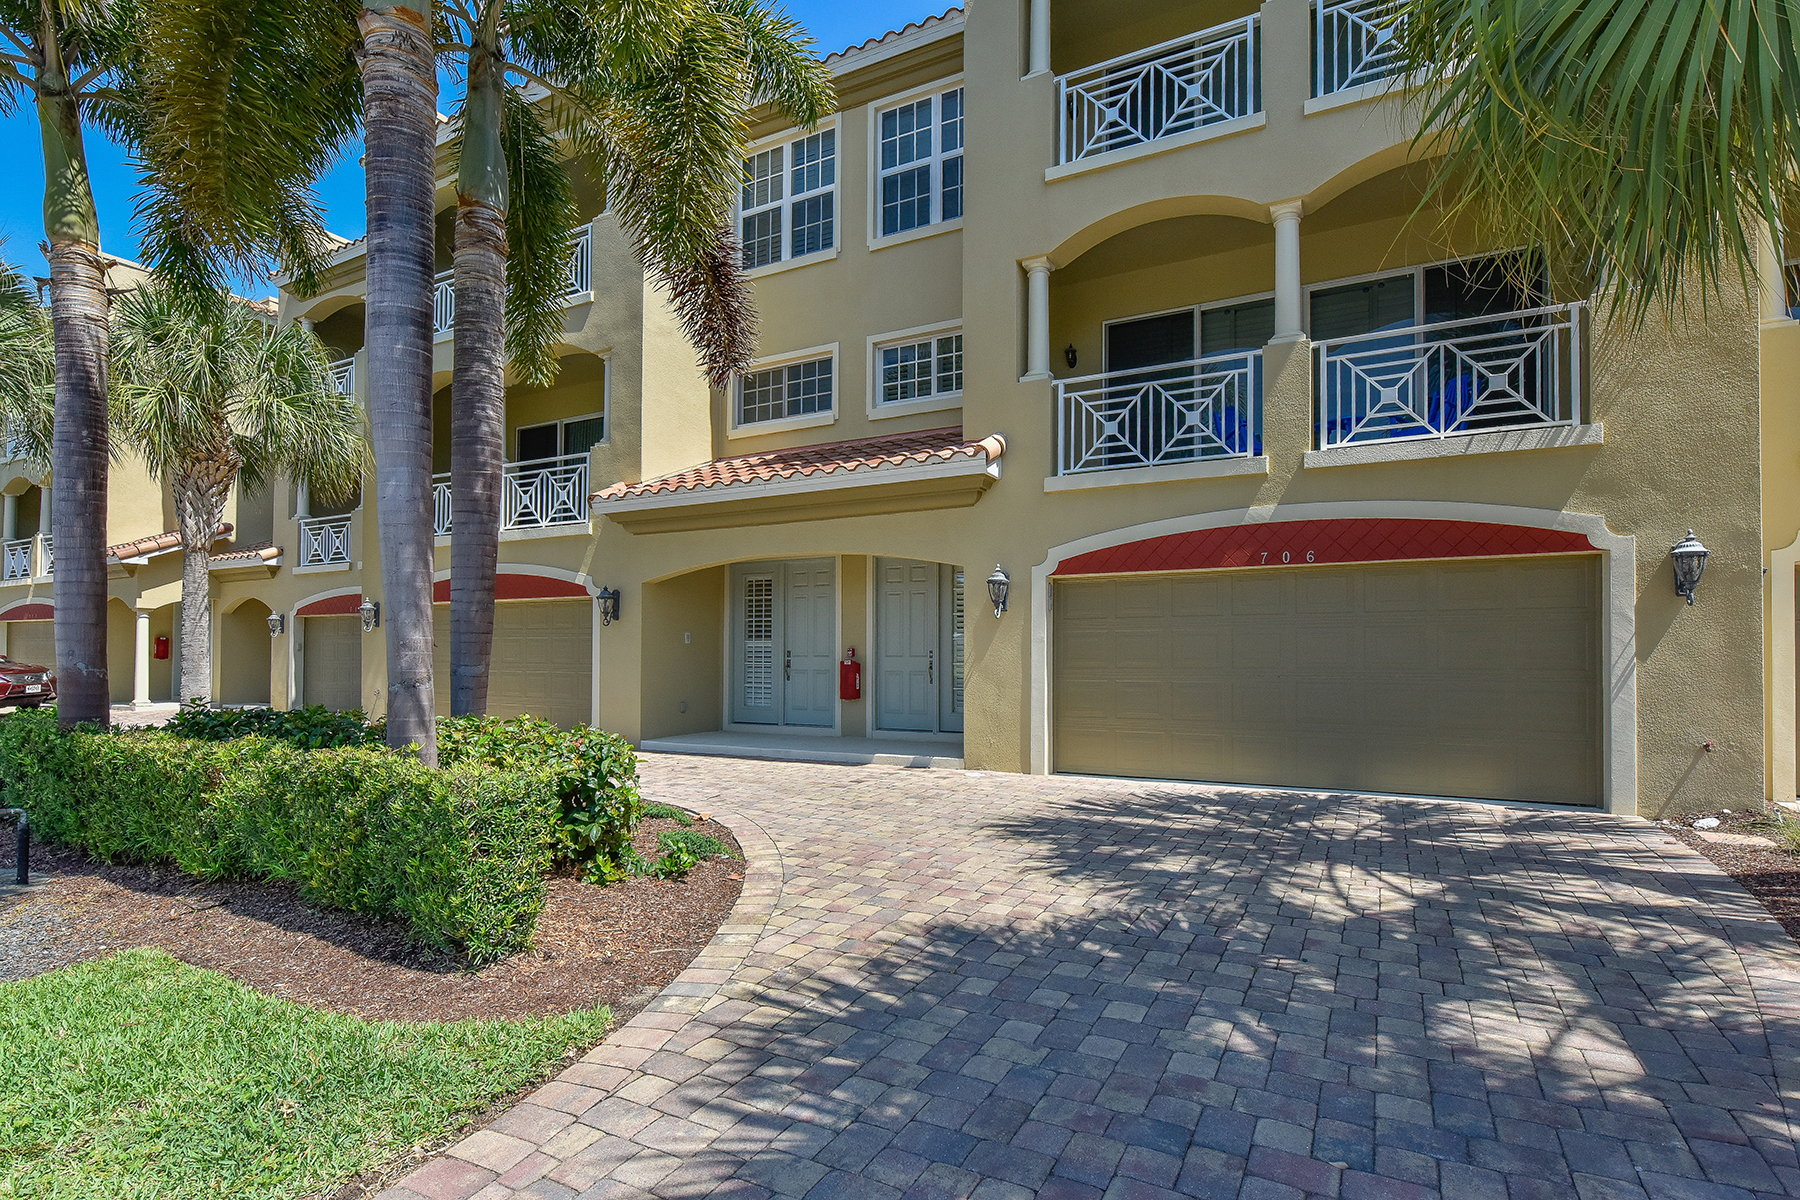 Condominium for Sale at VENICE 708 Granada Ave 4 Venice, Florida, 34285 United States